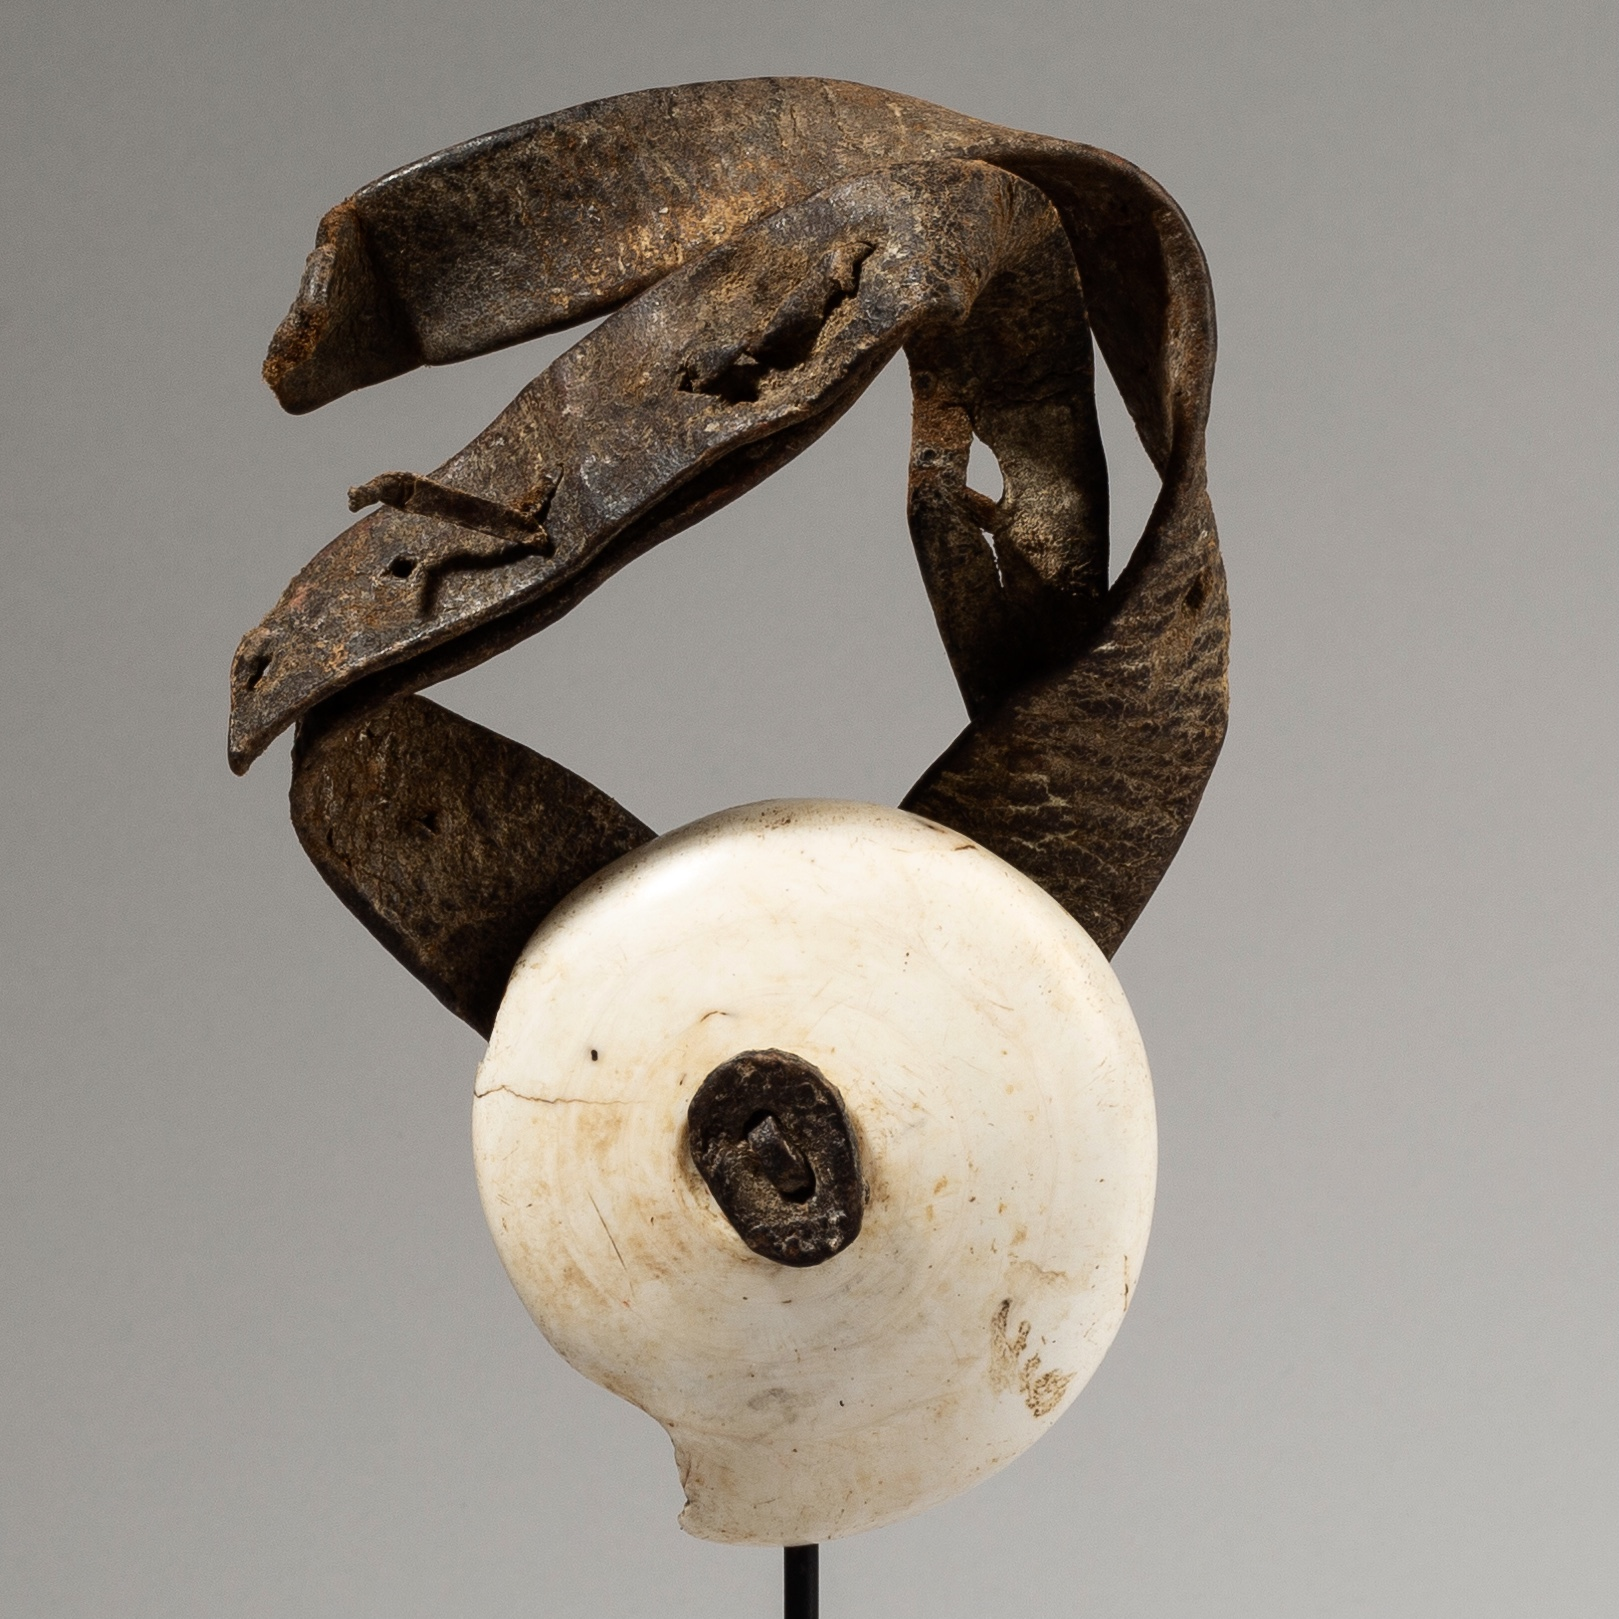 A EXTRA LARGE CURRENCY SHELL ON A LEATHER BELT, HIMBA TRIBE NAMIBIA  ( No 3814 )